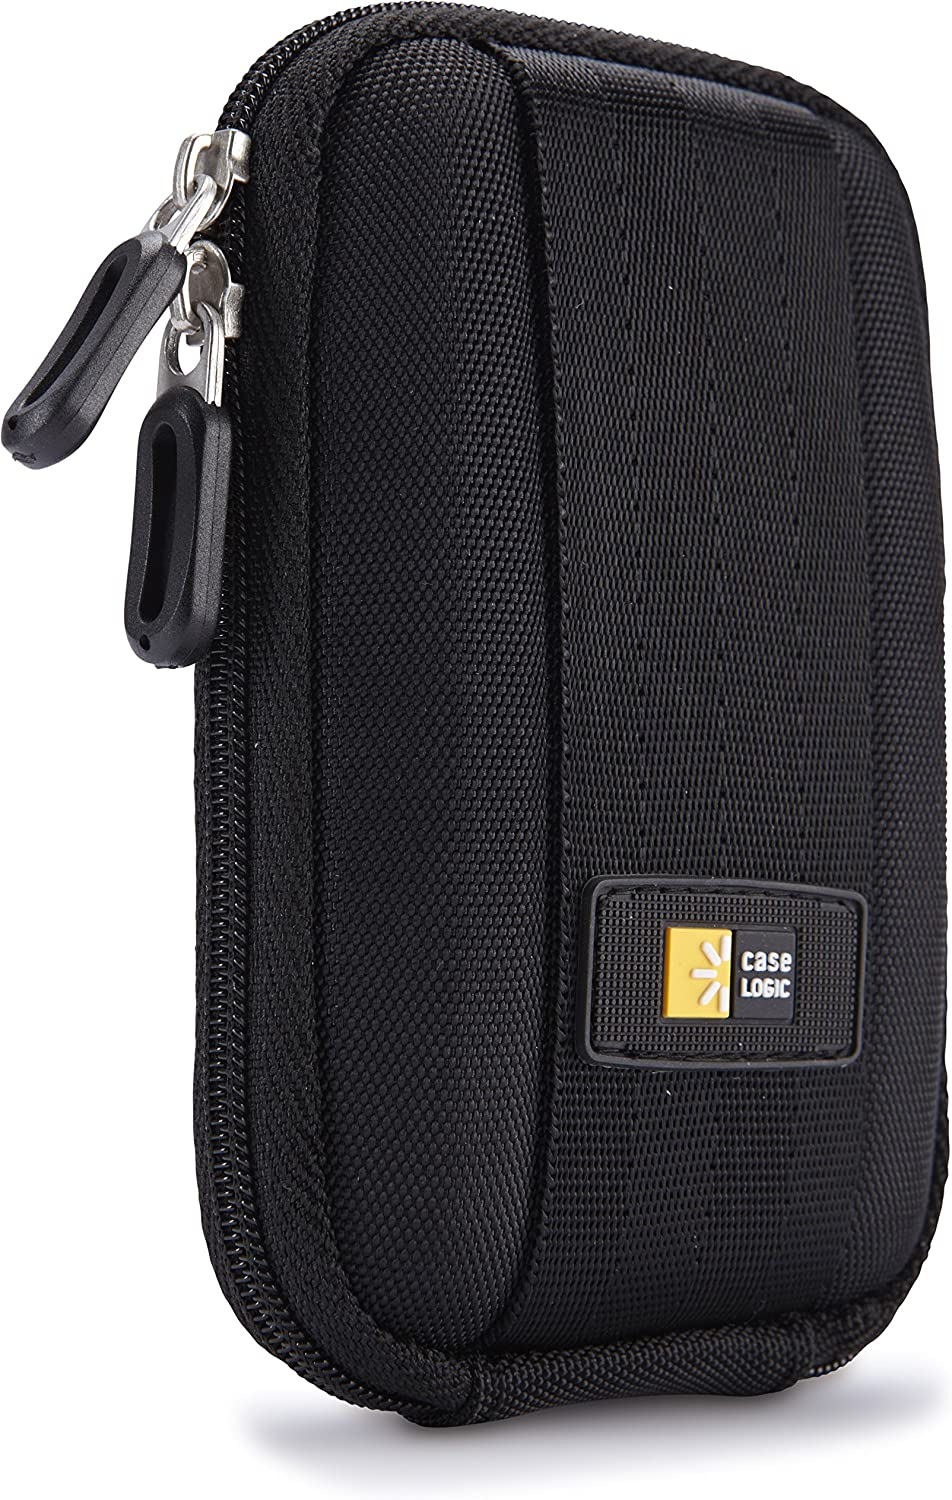 Case Logic Black 30 Cassette Tape Suitcase Holder with Extra Outside Zipper Strap